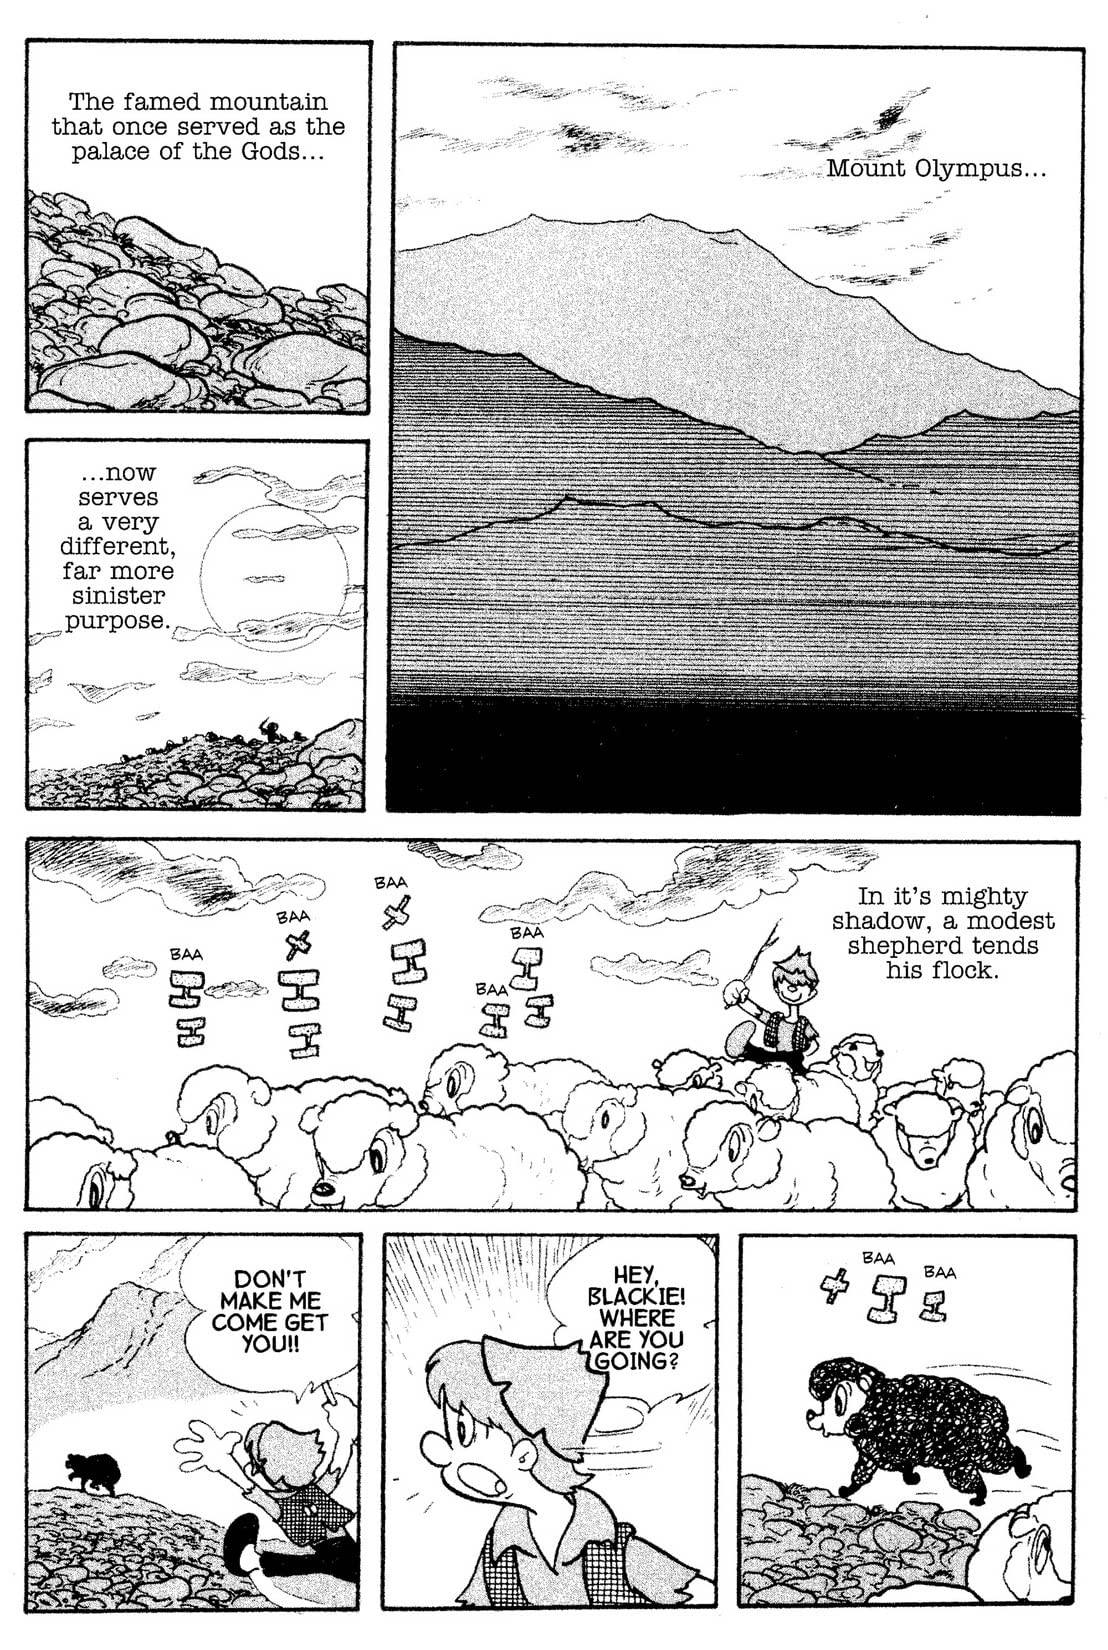 Cyborg 009 Vol. 6: Preview